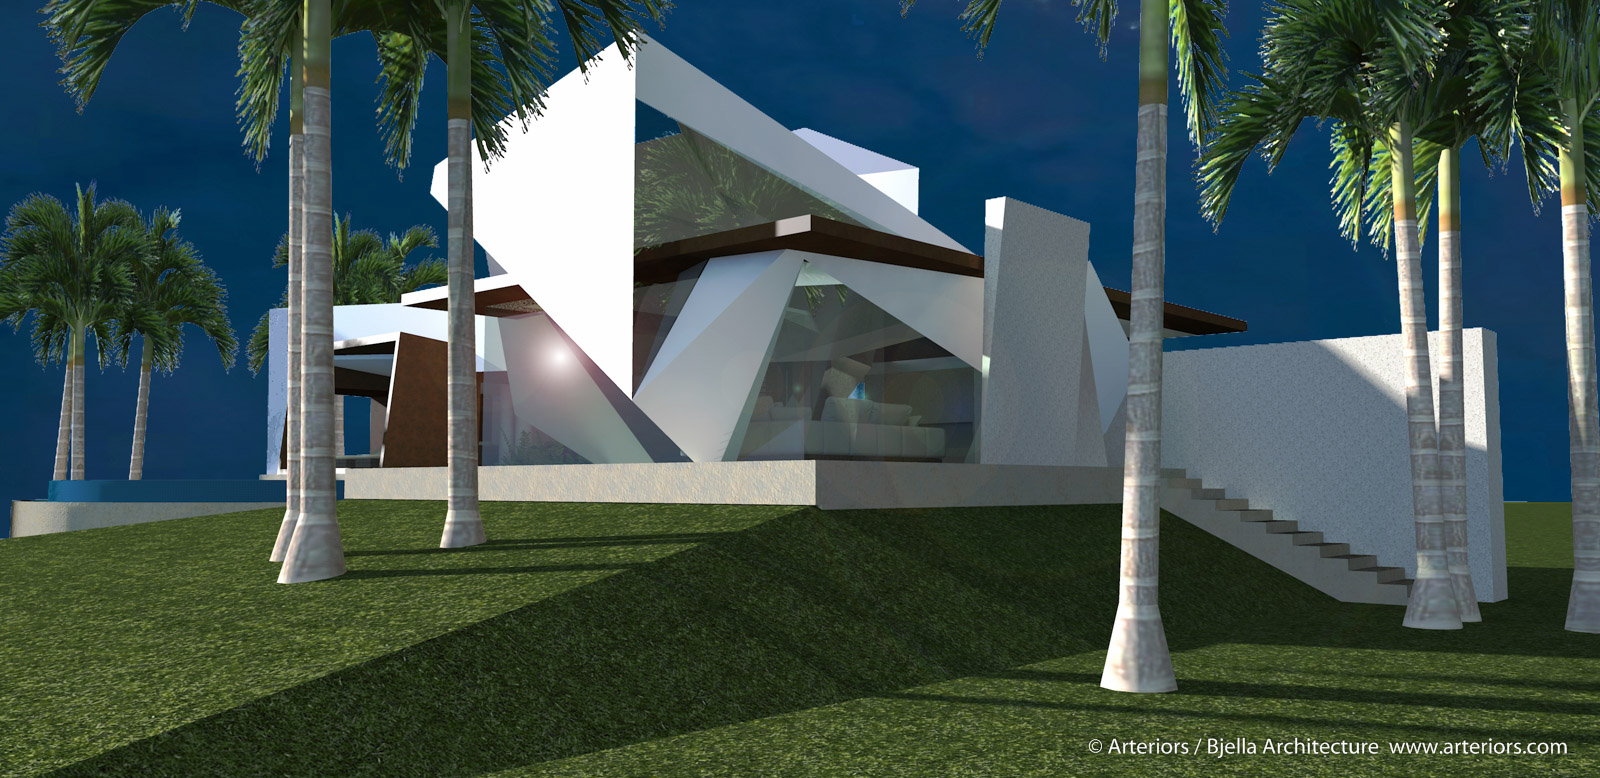 Sculptural Hawaii Island Home by Arteriors Architects-1